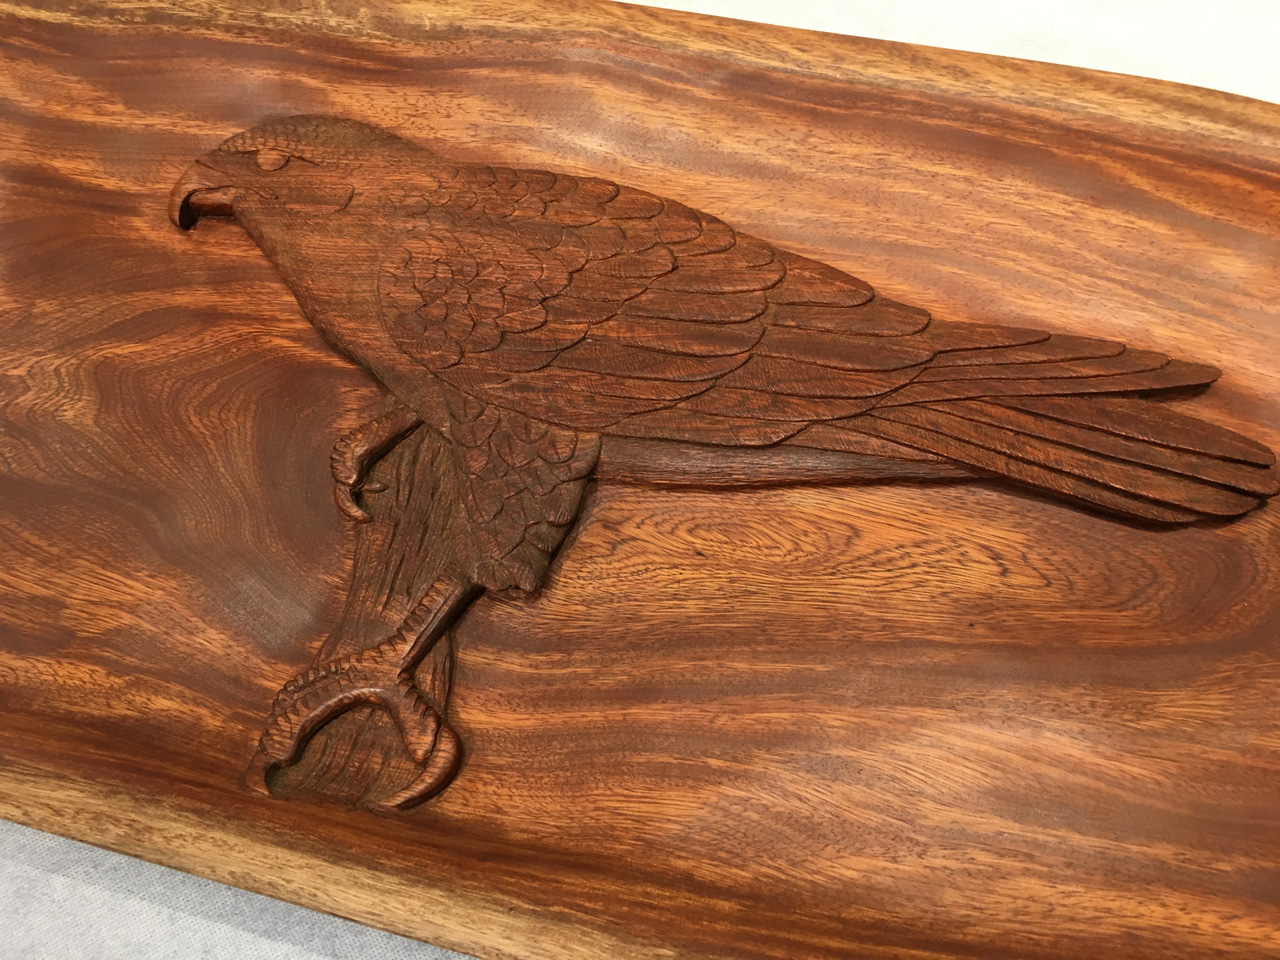 Kamani Wood Hawk Carving